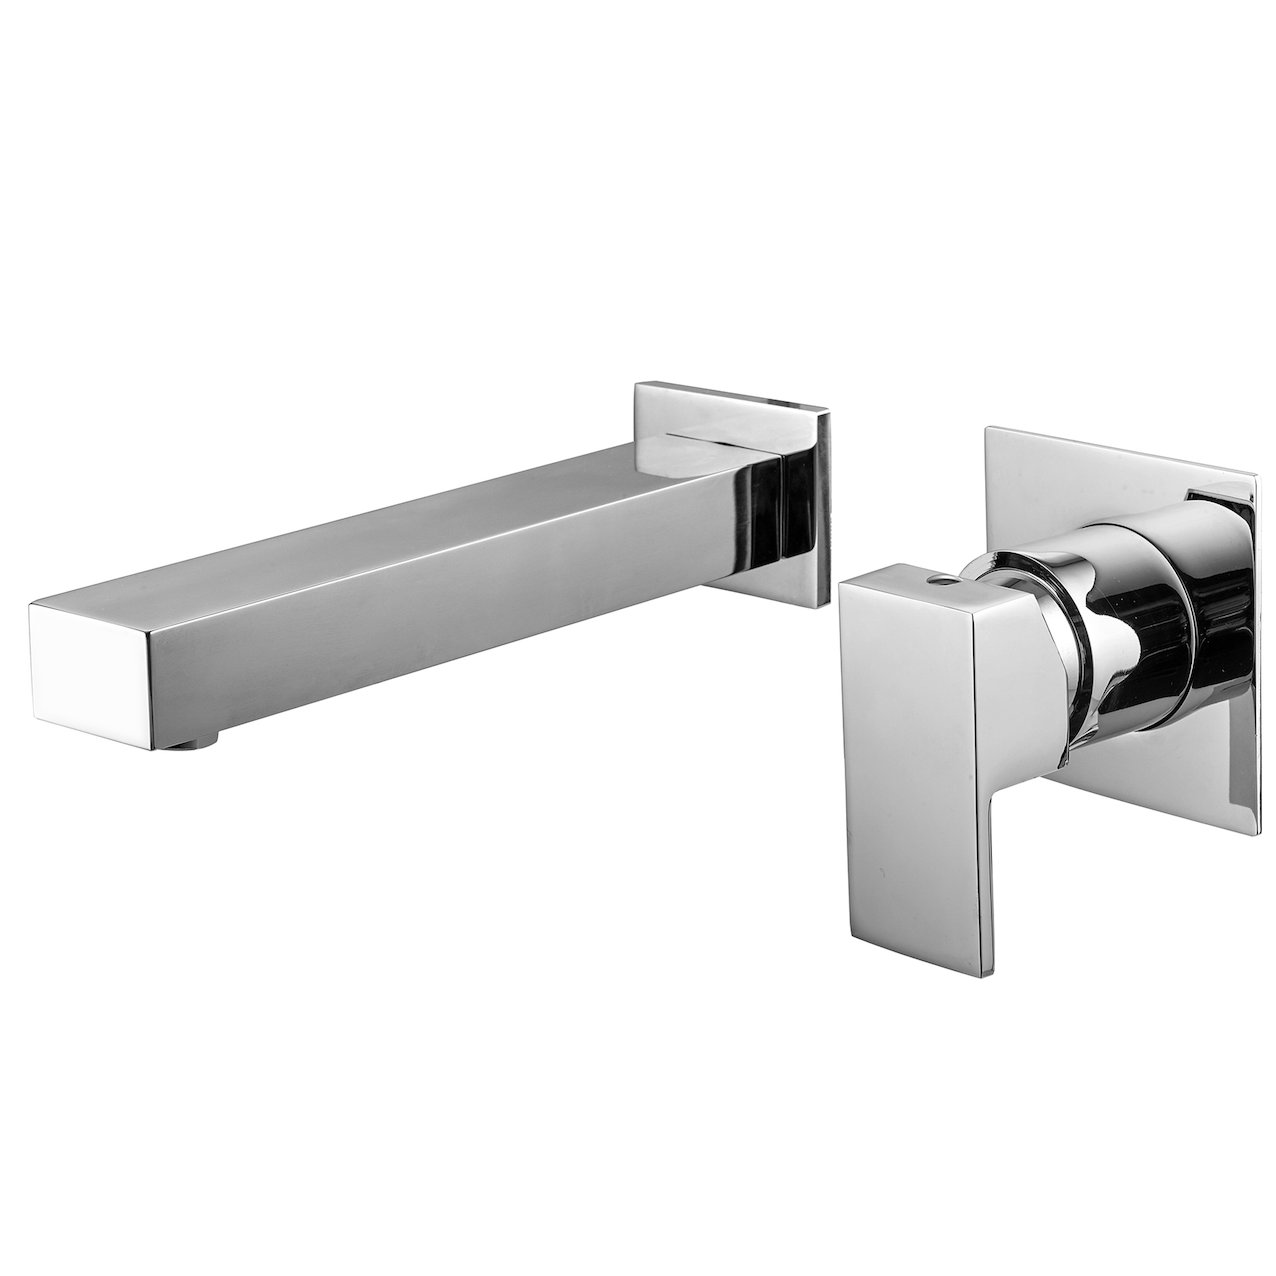 Double outlet wash basin mixer Quadra